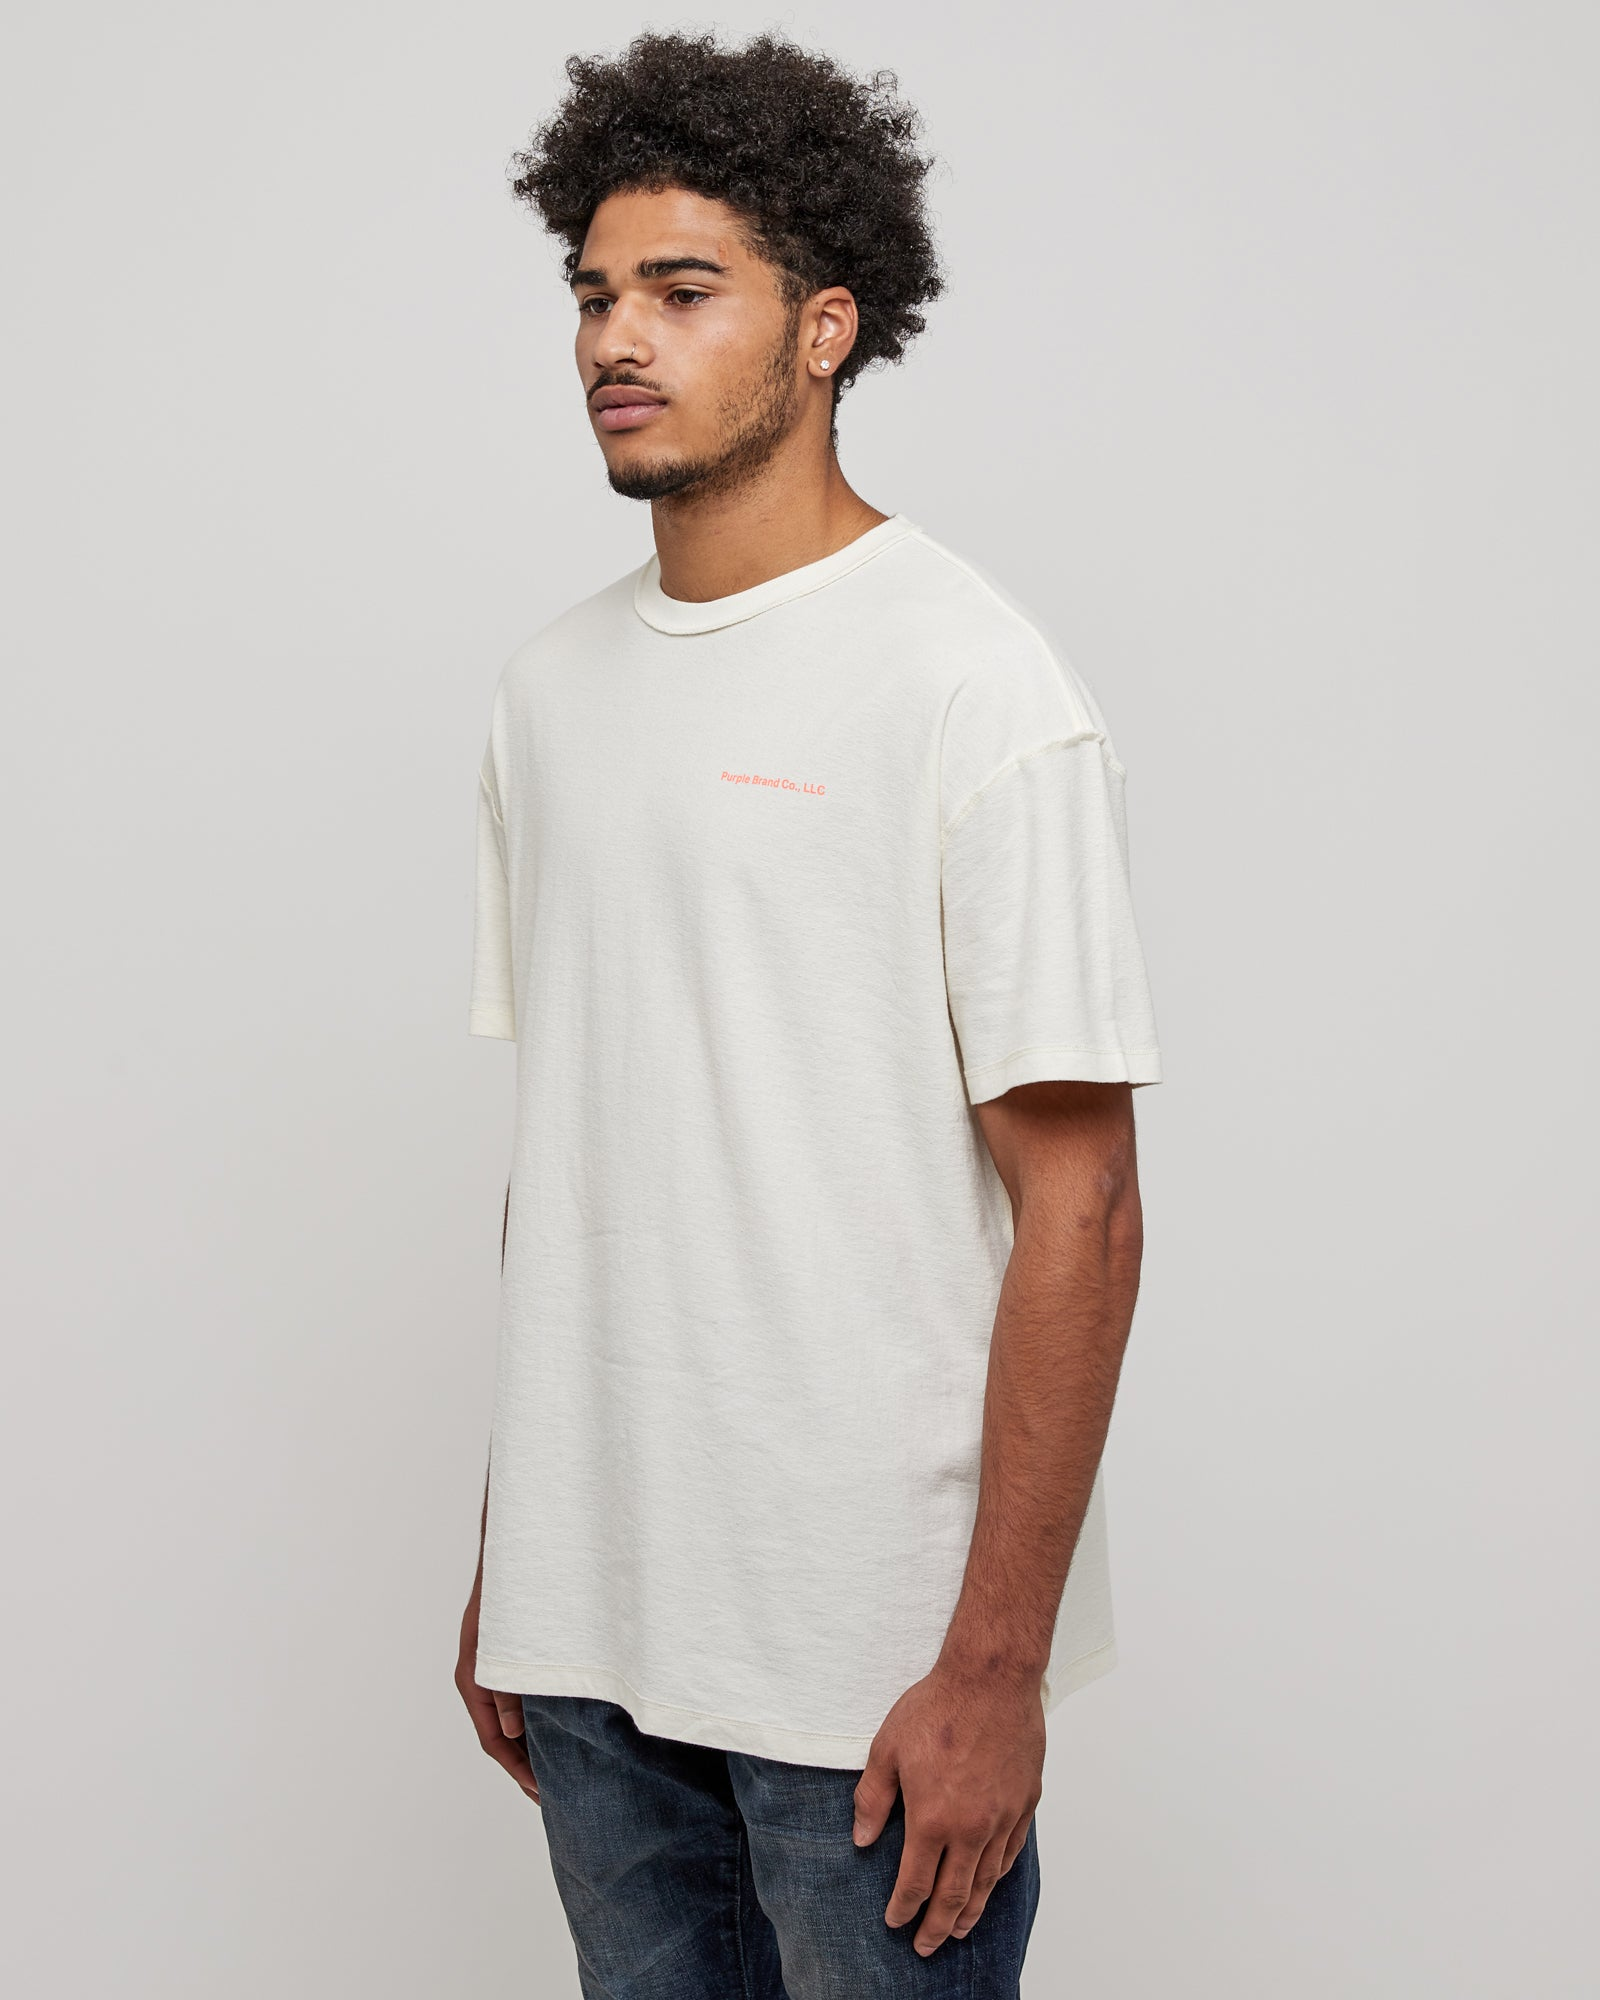 101 Relaxed Fit SS Tee in New World Neon